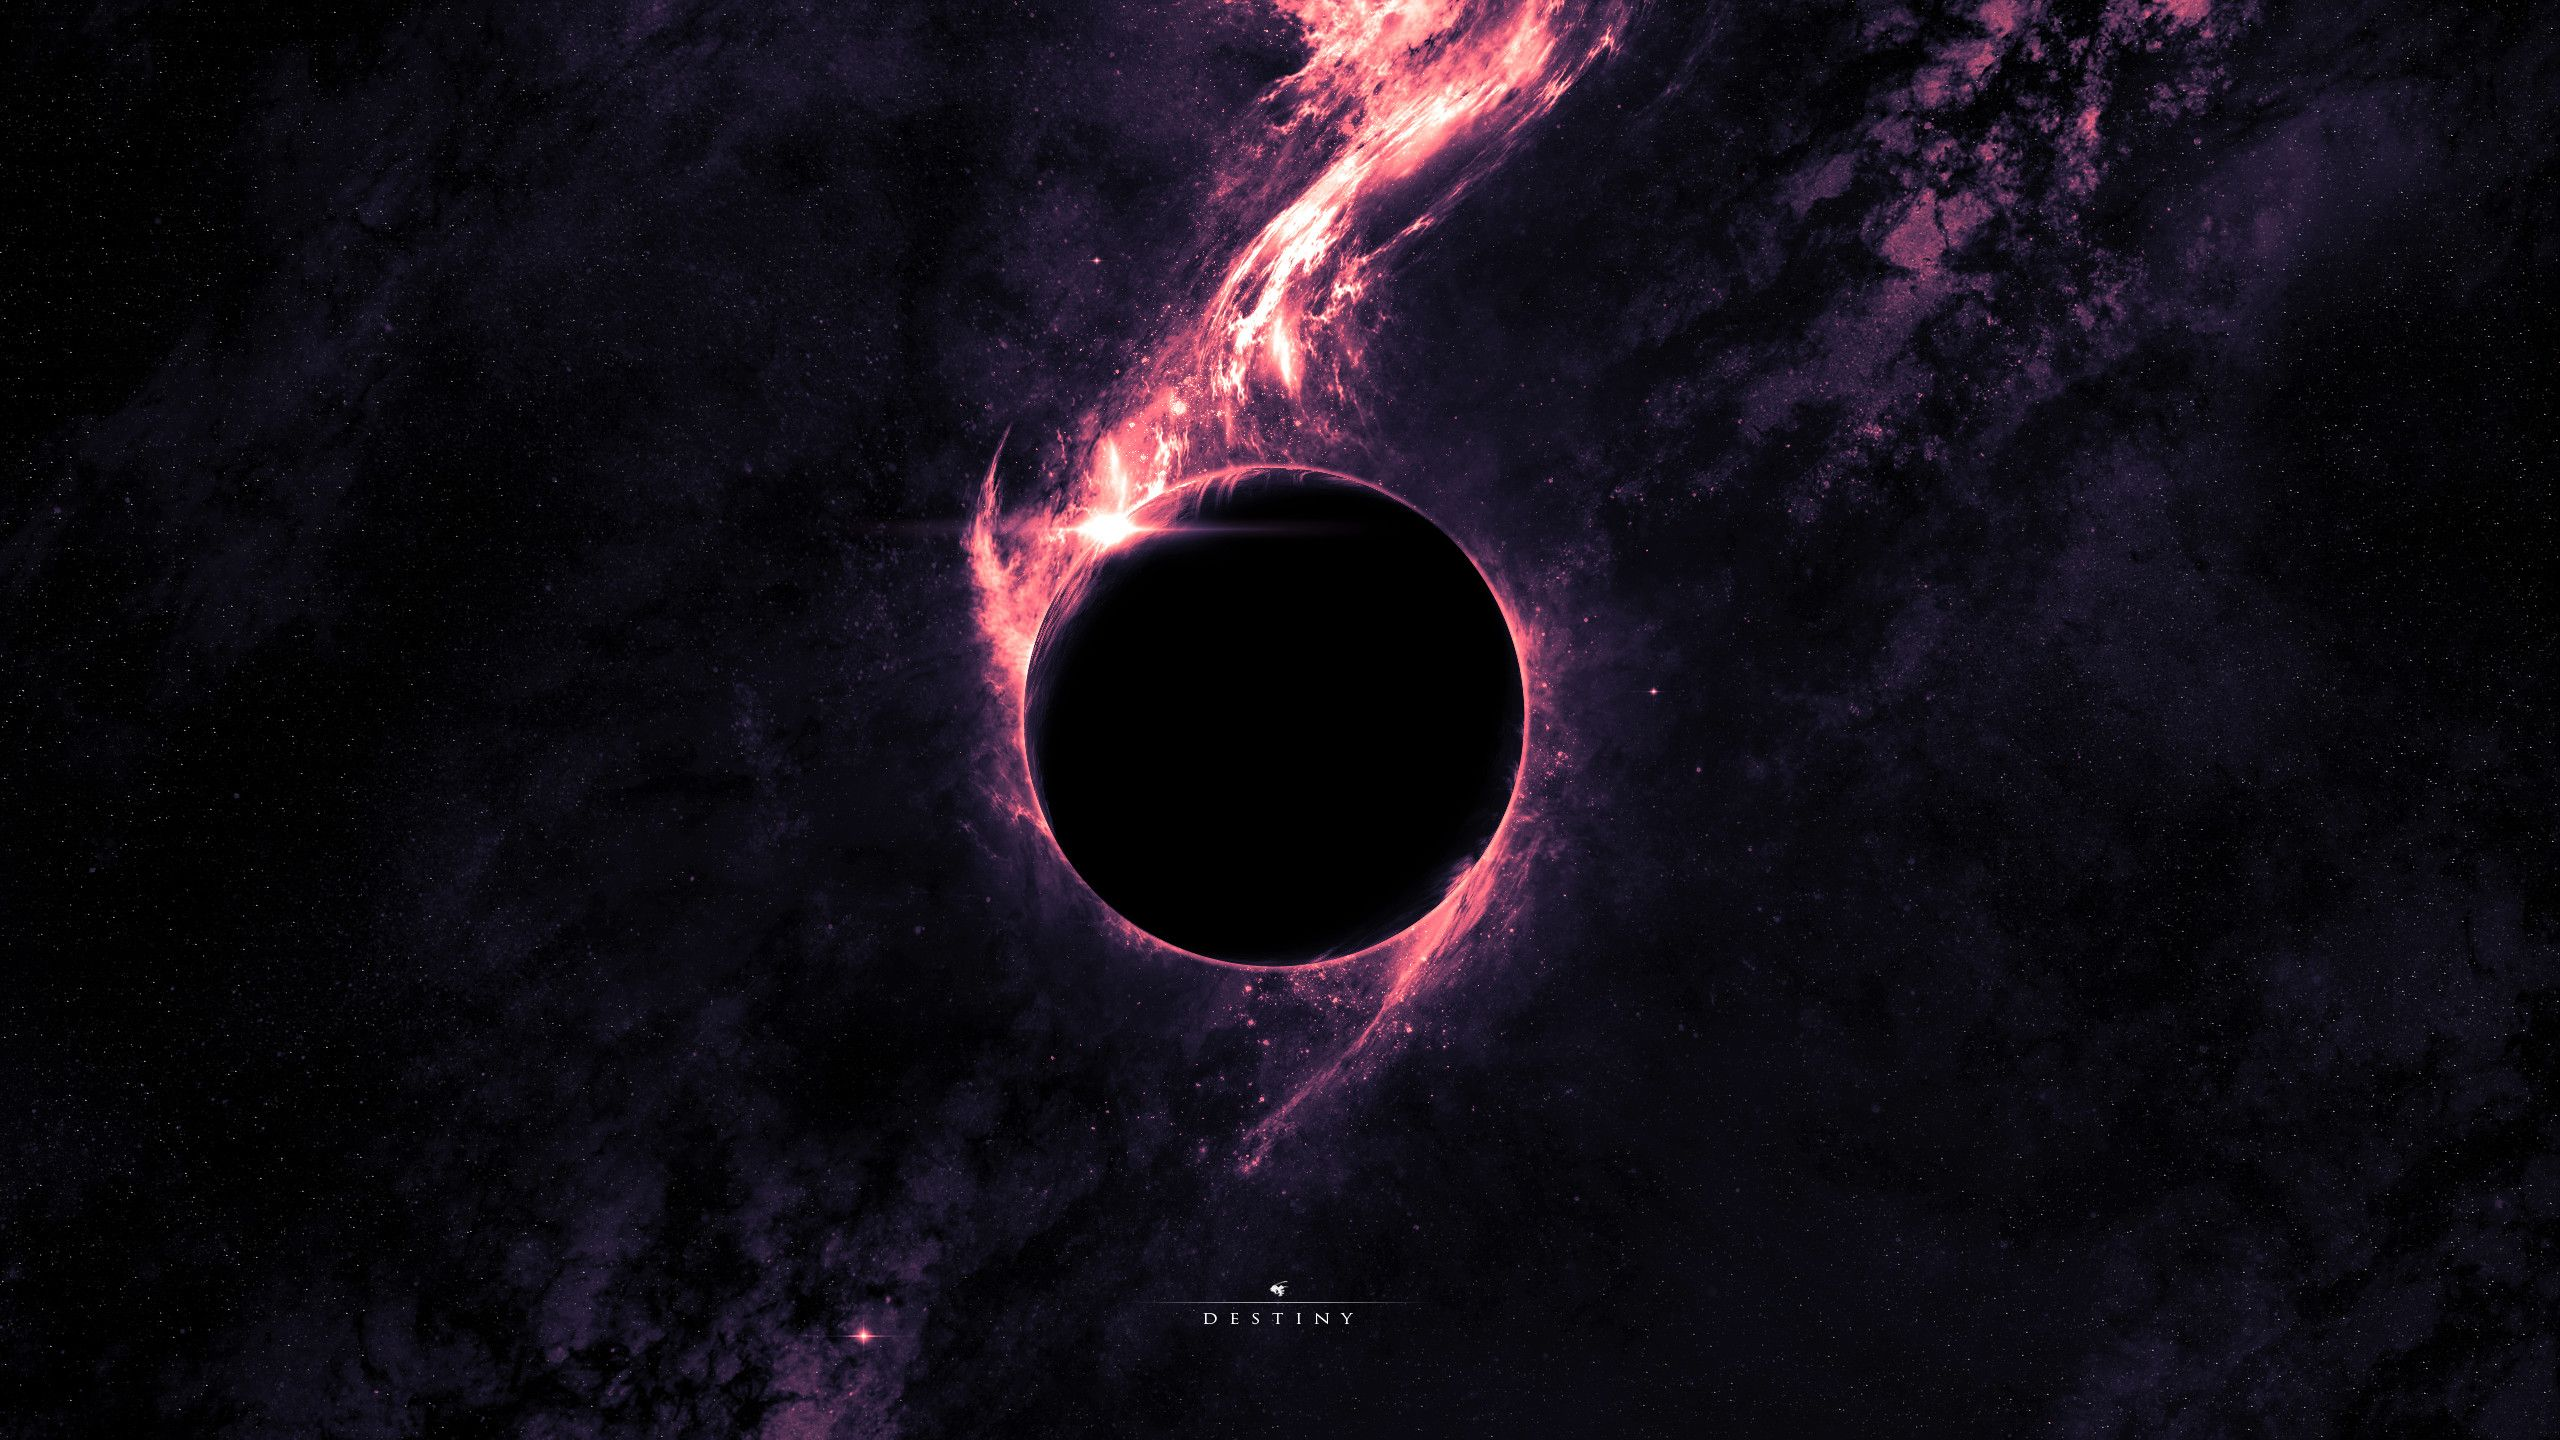 4k Destiny Wallpapers 54 Images Black Hole Wallpaper Dark Purple Wallpaper Black Hole